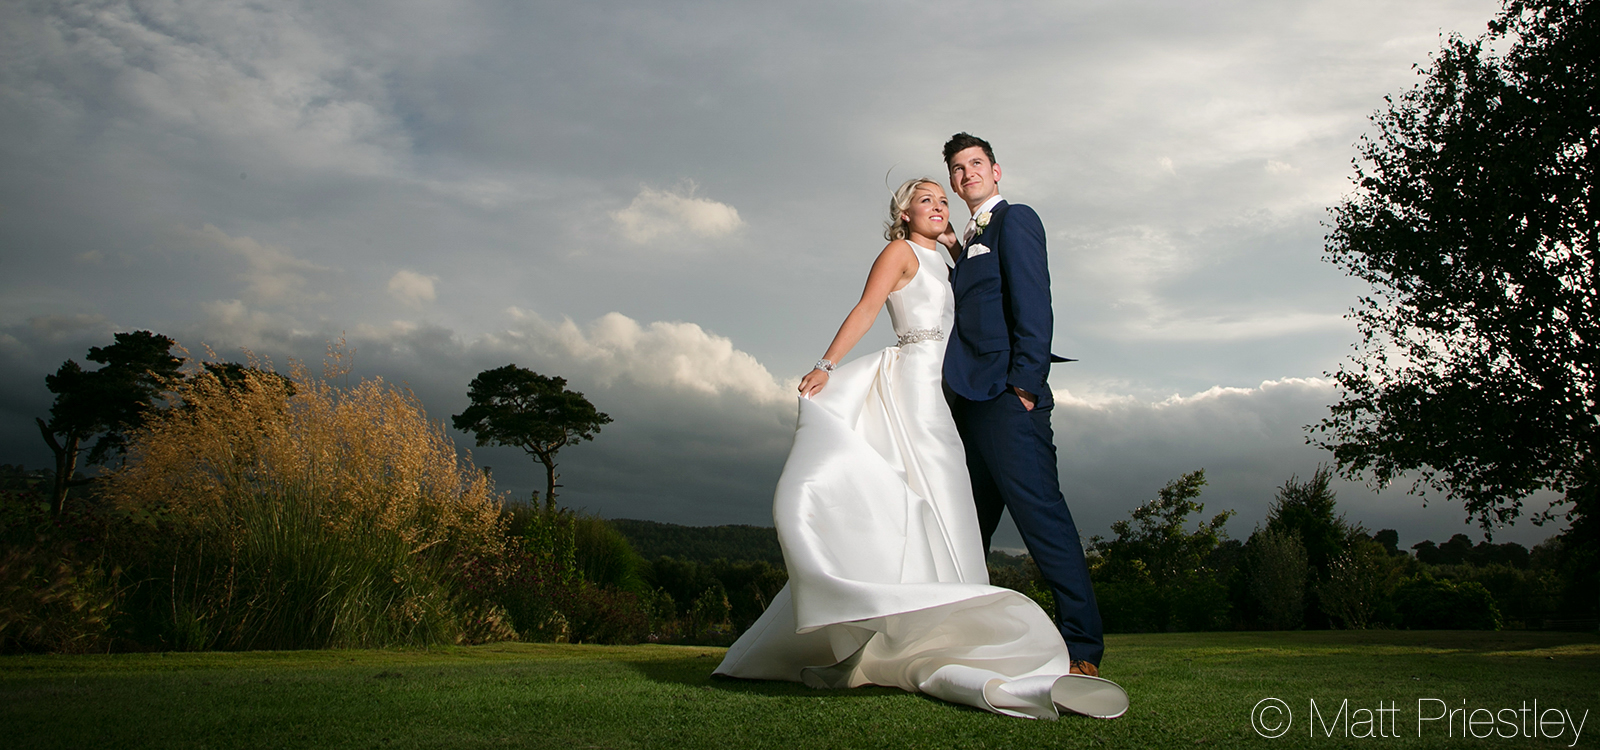 Abbeywood-Cheshire-wedding-venue-wedding-photography-for-Sophie-and-Dave-by-Altrincham-photographer-Matt-Priestley119